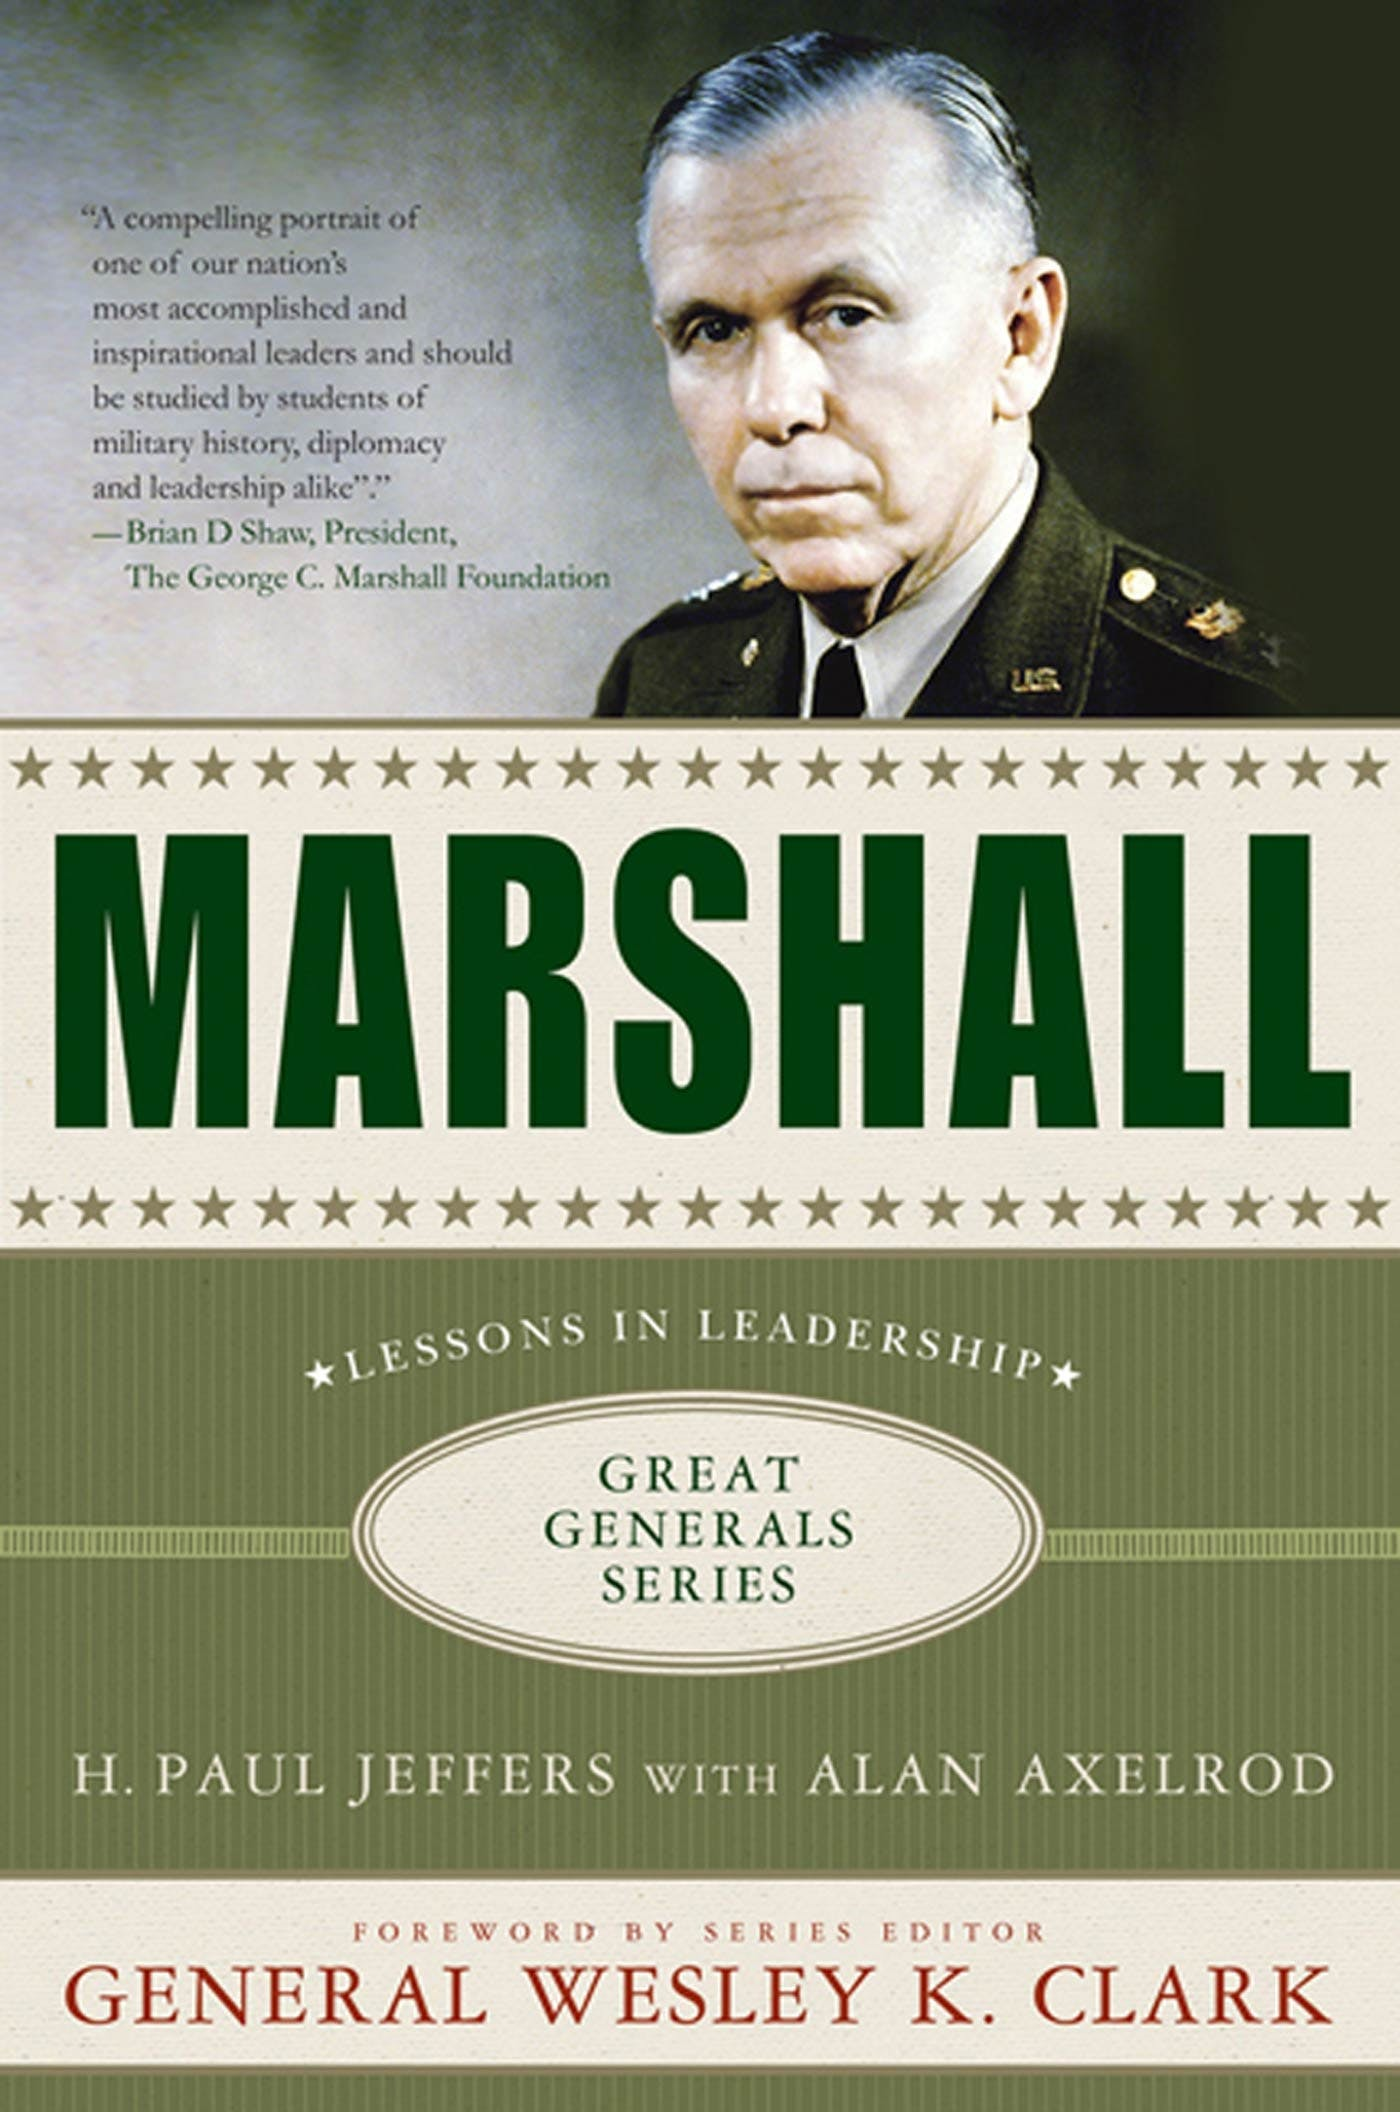 Image of Marshall: Lessons in Leadership